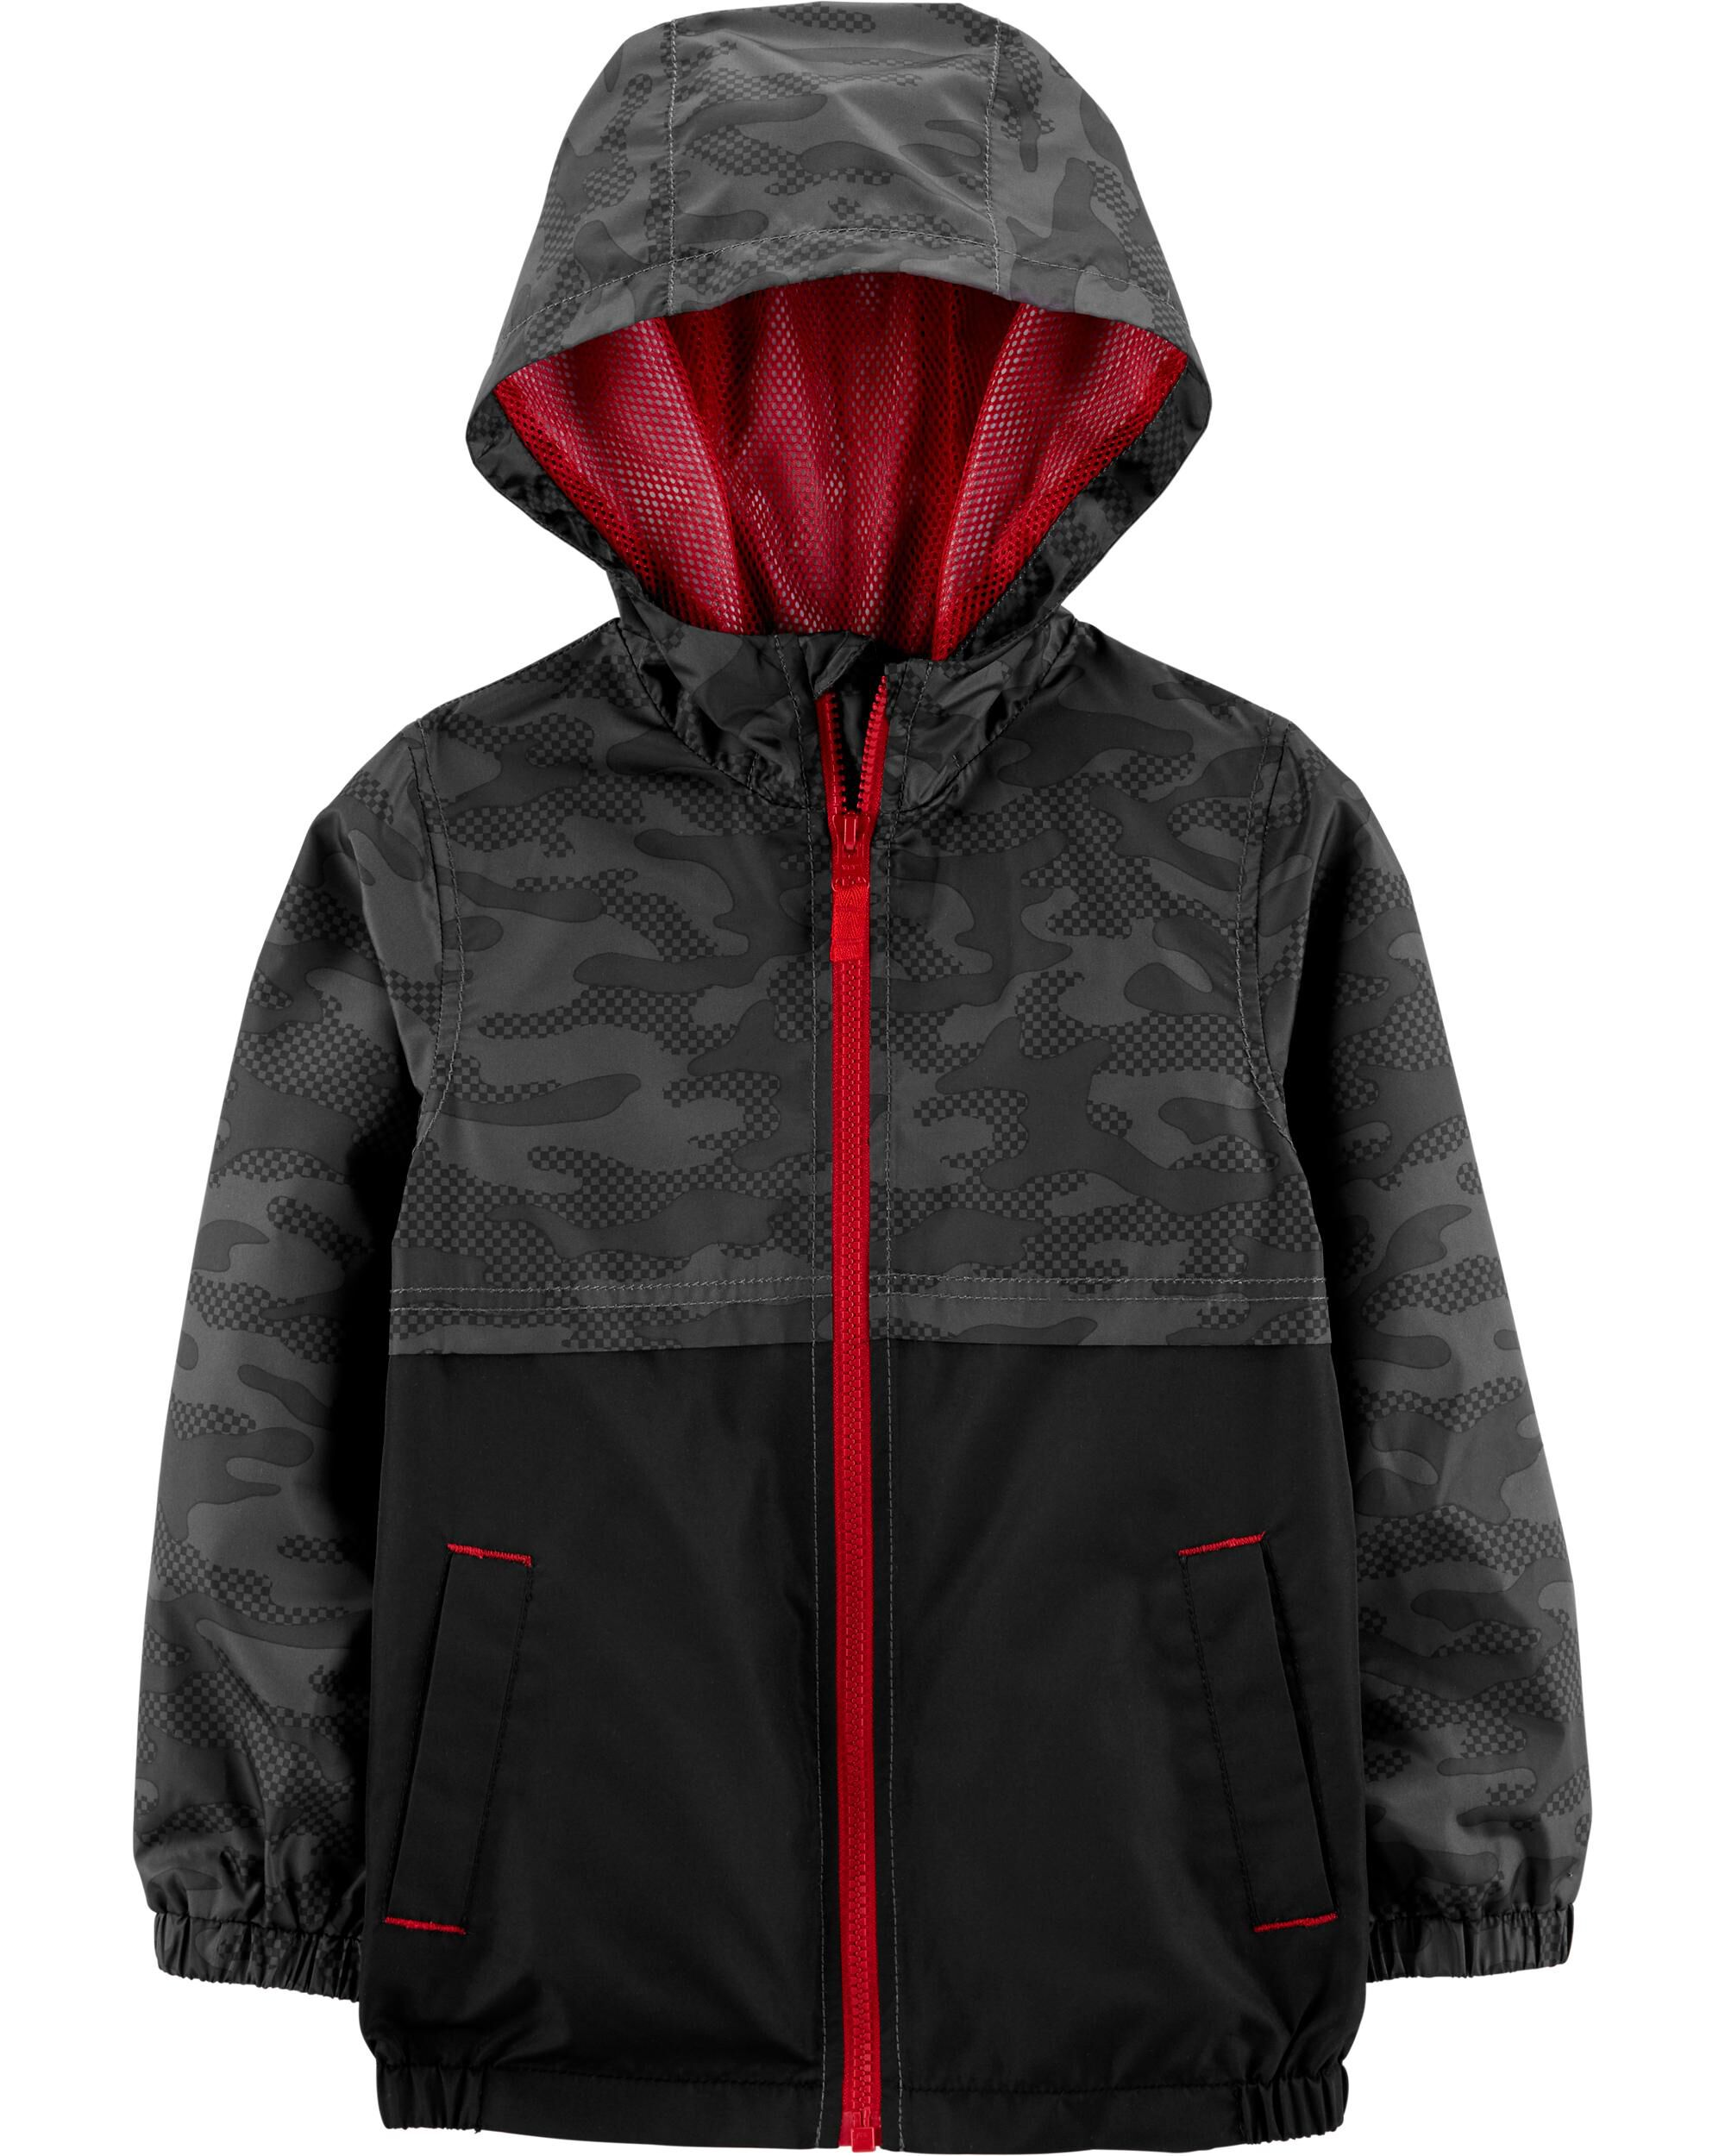 Autumn Winter Childrens Down Cotton Jacket Outdoor Boys Girls Camouflage Thin Hooded Coat Kids Ultra-light Zipper Outwear Tops Excellent Quality In